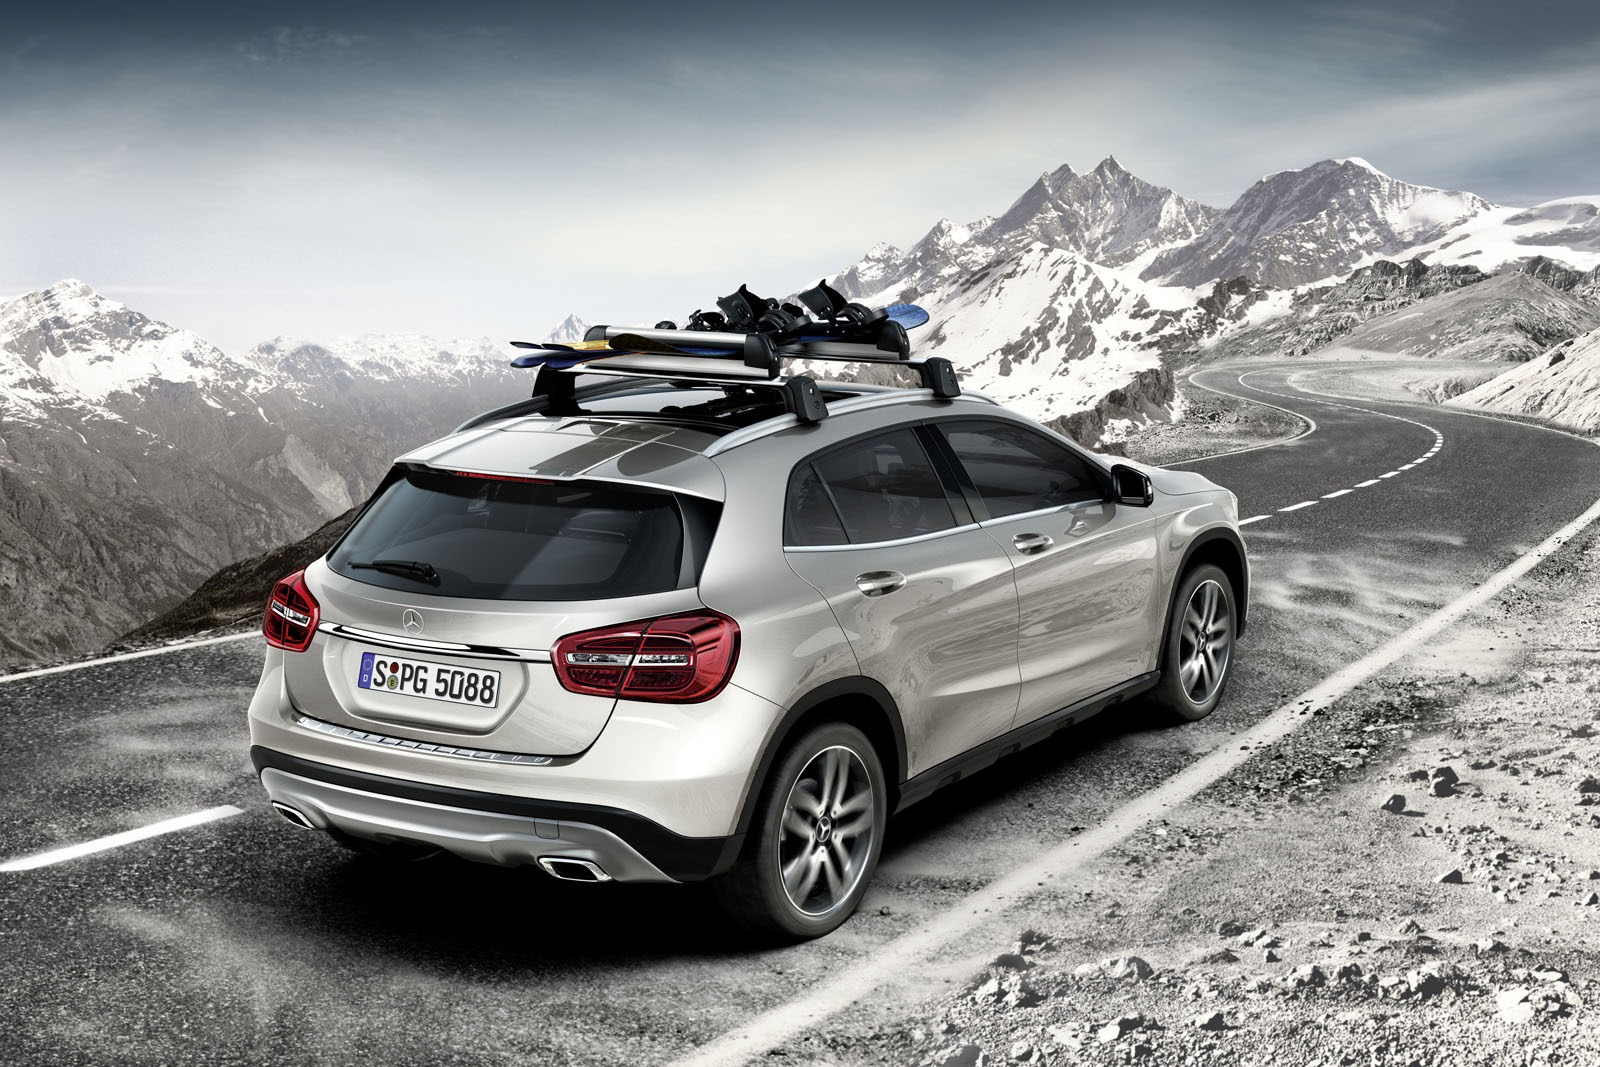 mercedes-benz designs a range of accesories for the gla